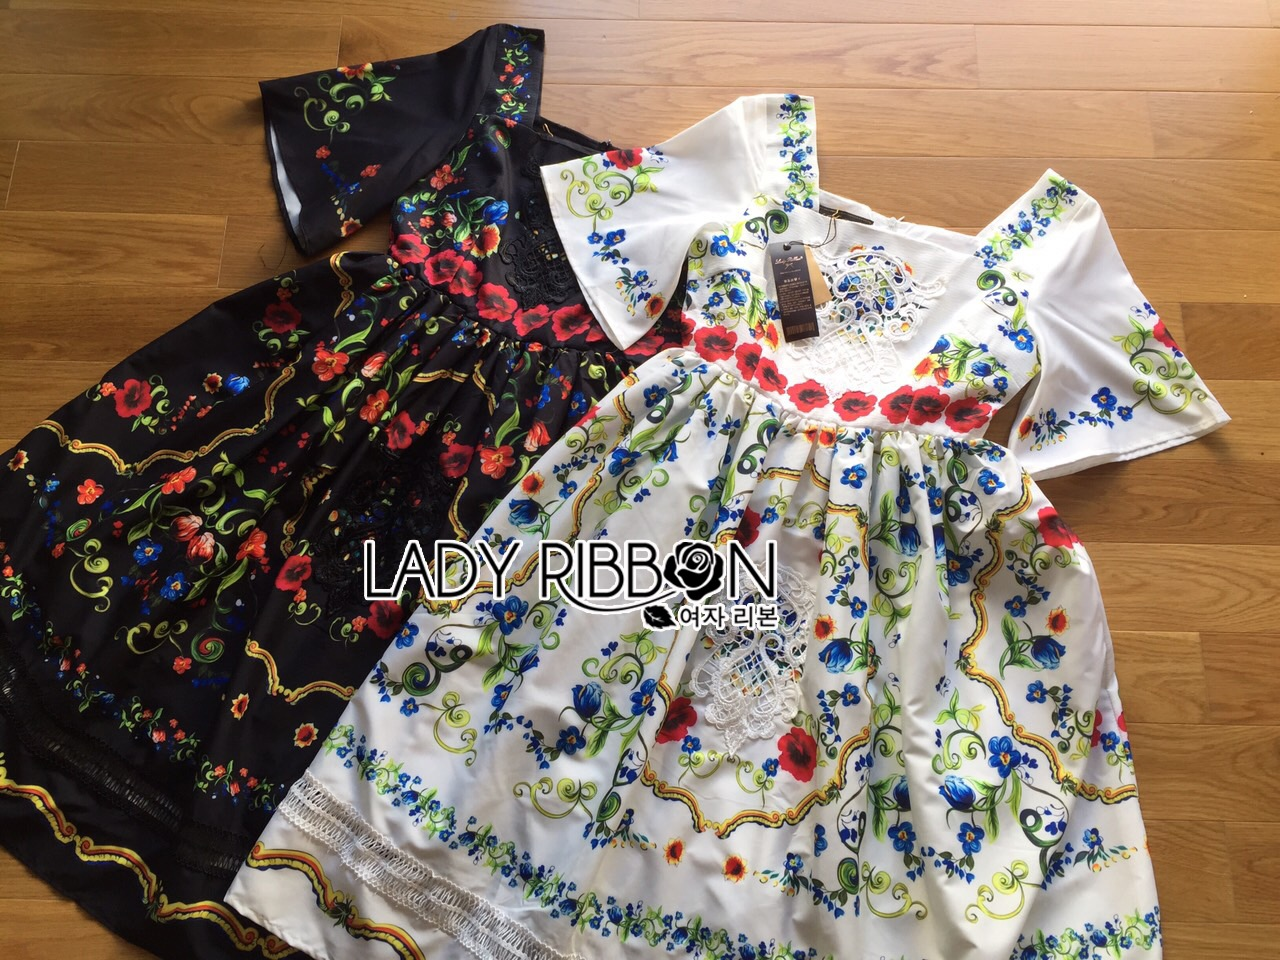 Lady Ribbon Dress LR03120516 &#x1F380 Lady Ribbon's Made &#x1F380 Lady Florence Blooming Floral Printed Lace Embroidered Polyester Dress